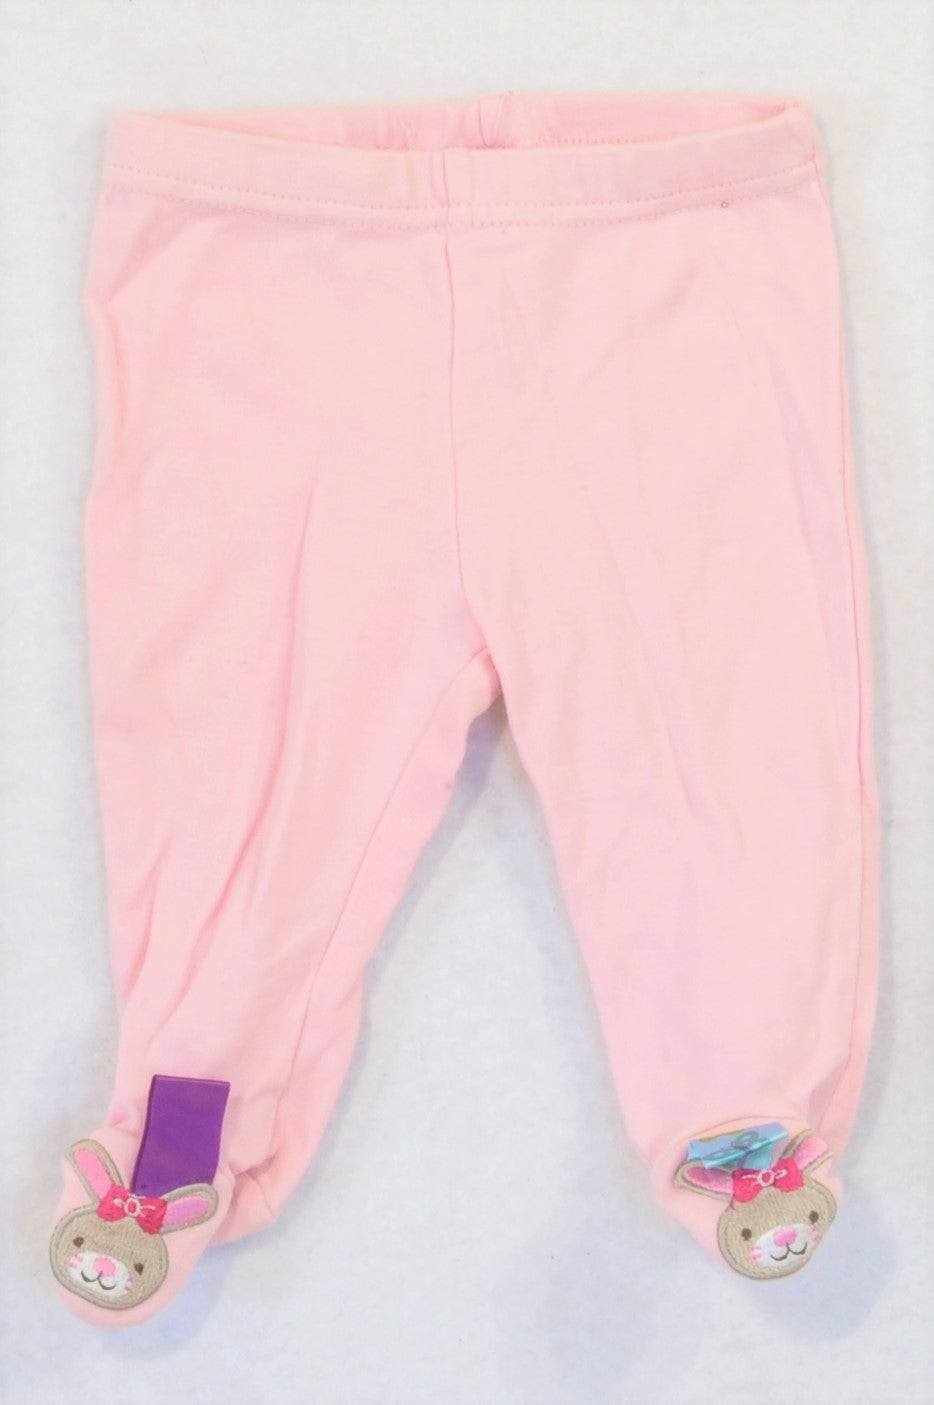 Taggies Pink Sensory Taglet Footed Leggings Girls 0-3 months